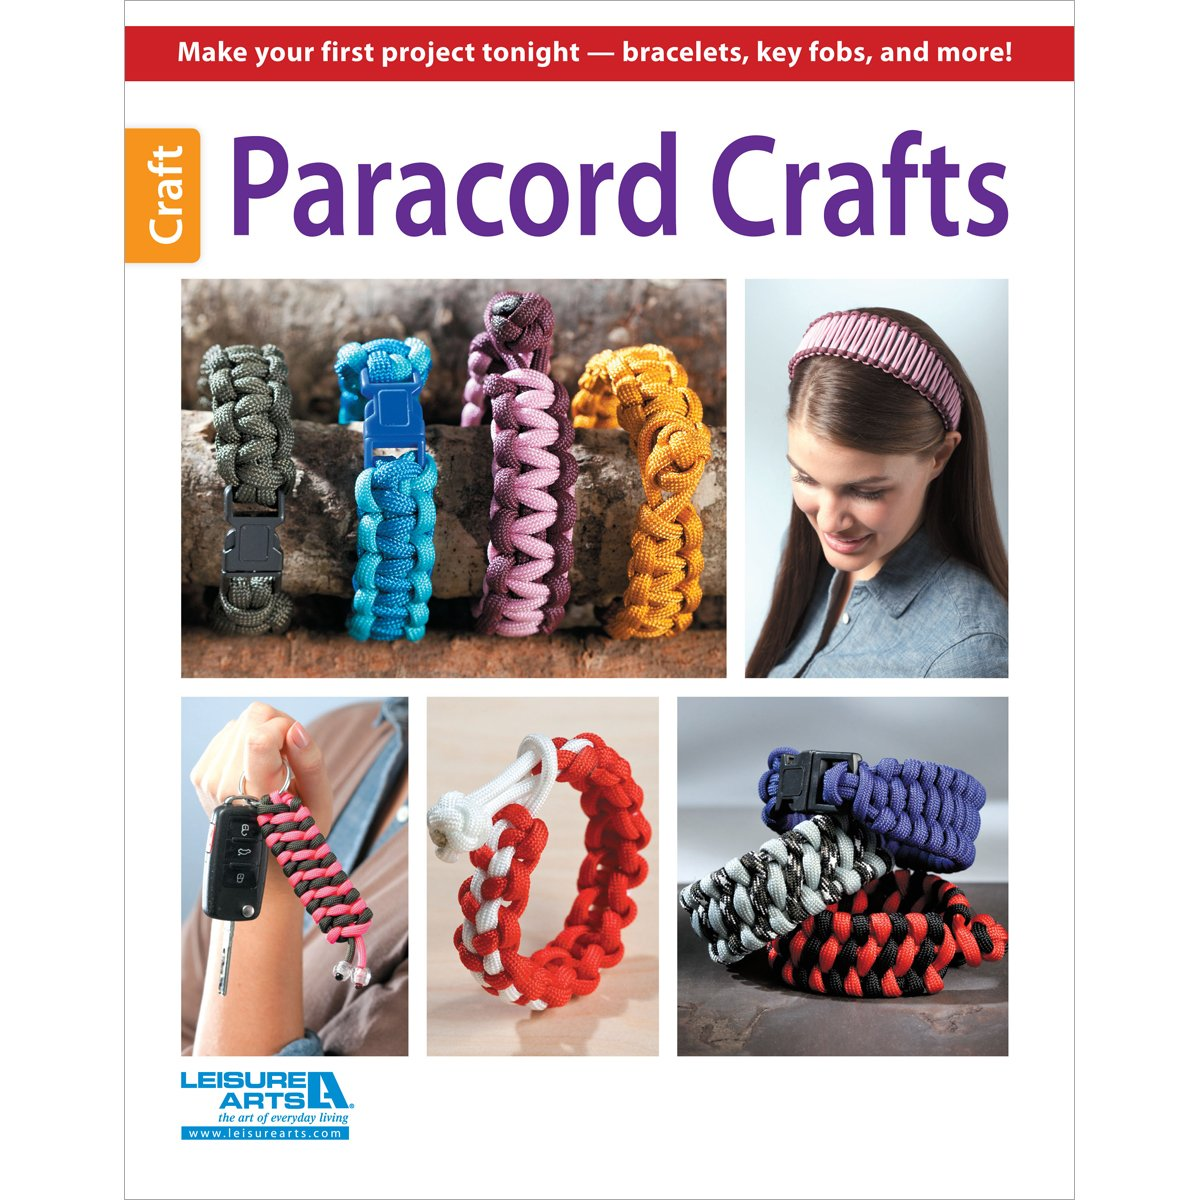 Paracord Crafts: Everybody Wants One - Clear Instructions Make it Easy!